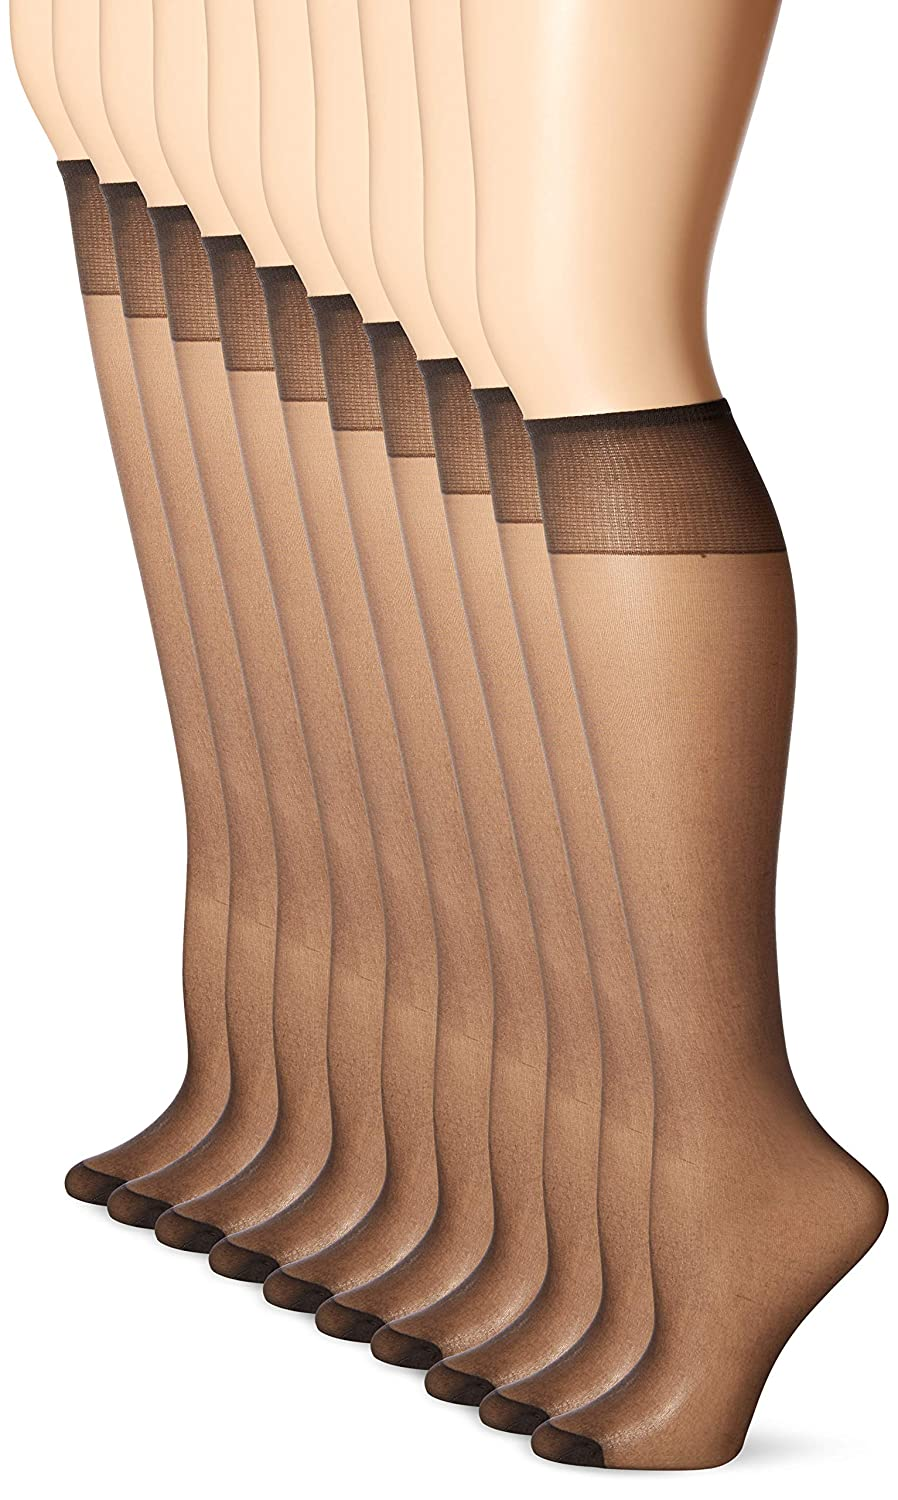 5ff6f6b1afdbd3 L'eggs Women's 10 Pair Everyday Reinforced Toe Knee Highs, Nude, One Size  at Amazon Women's Clothing store: